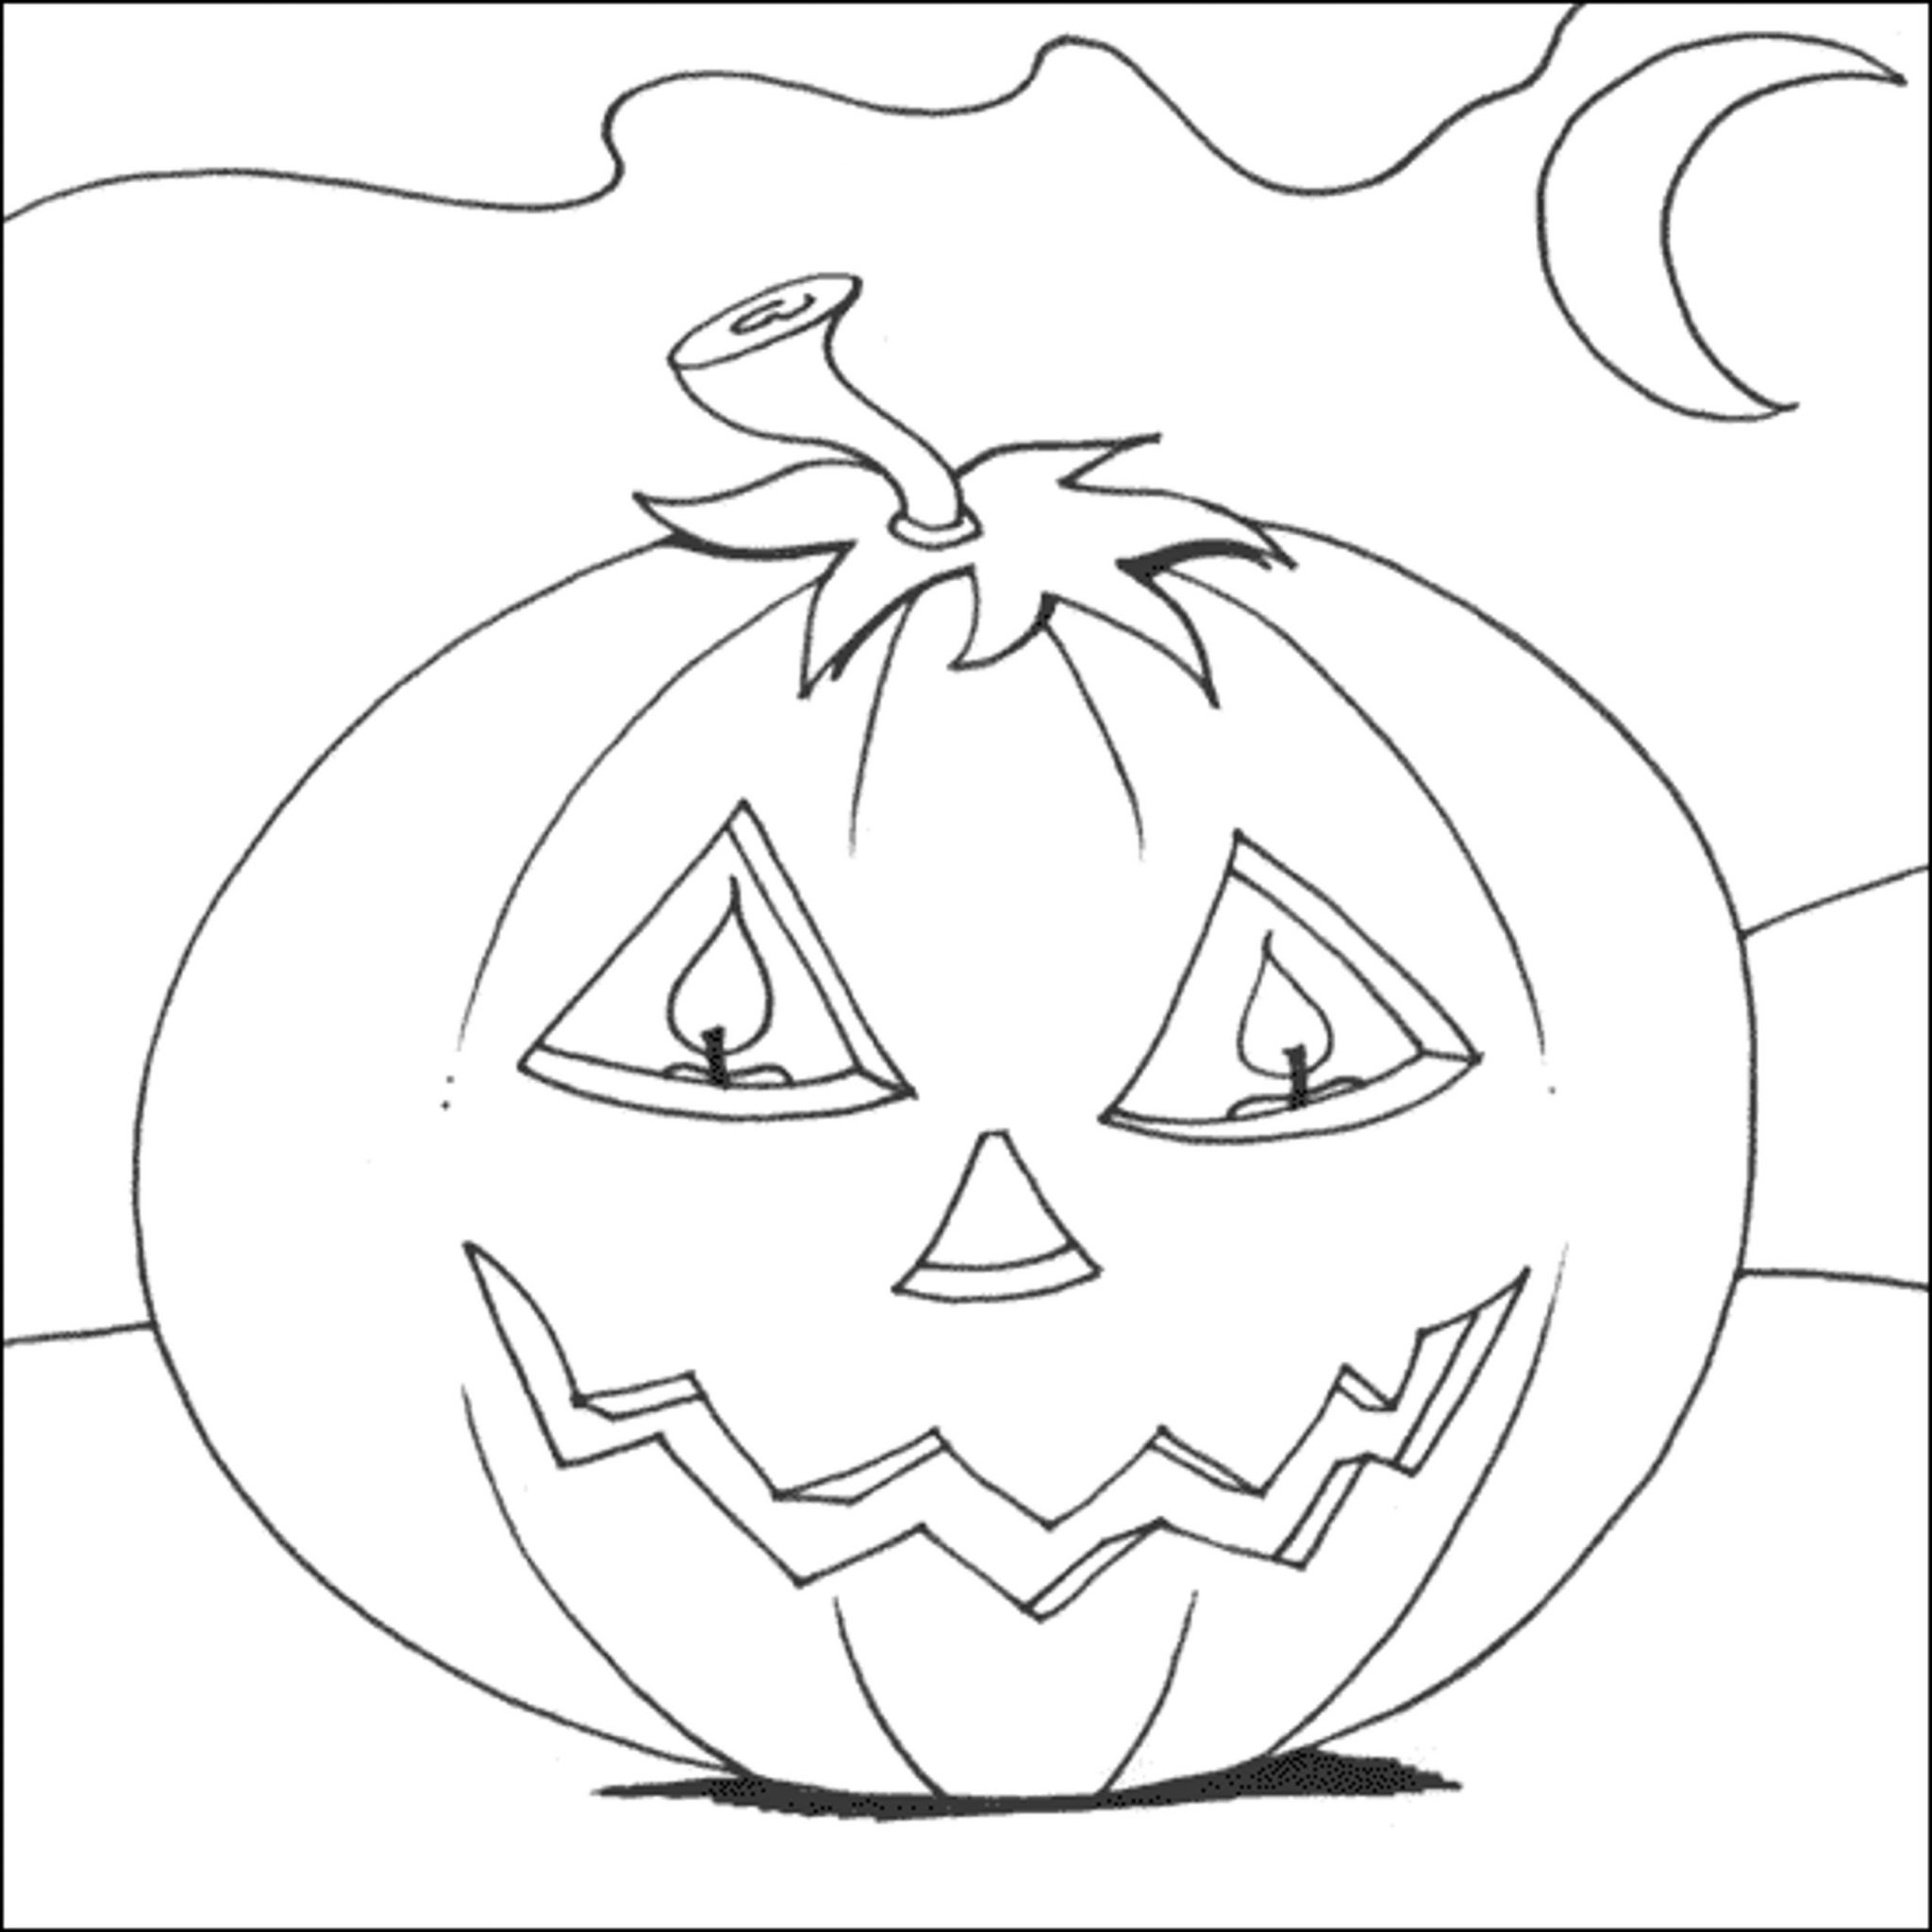 printable pumpkin coloring pages free printable pumpkin coloring pages for kids cool2bkids pumpkin coloring pages printable